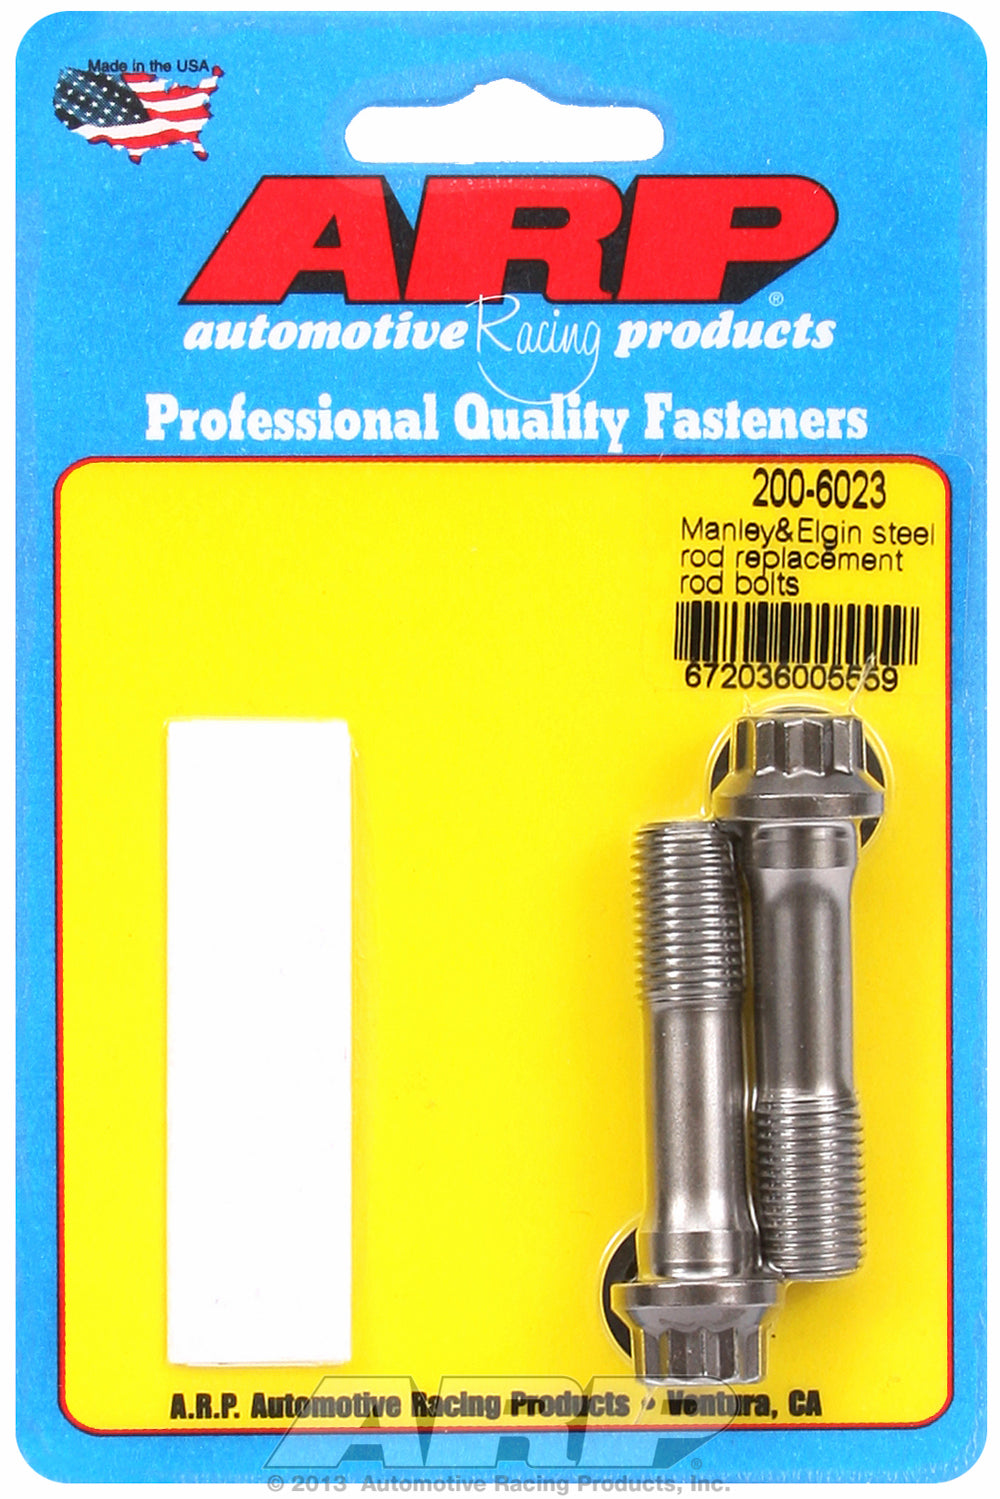 8740 General Replacement Rod Bolt Kit 2-pc Manley Replacement